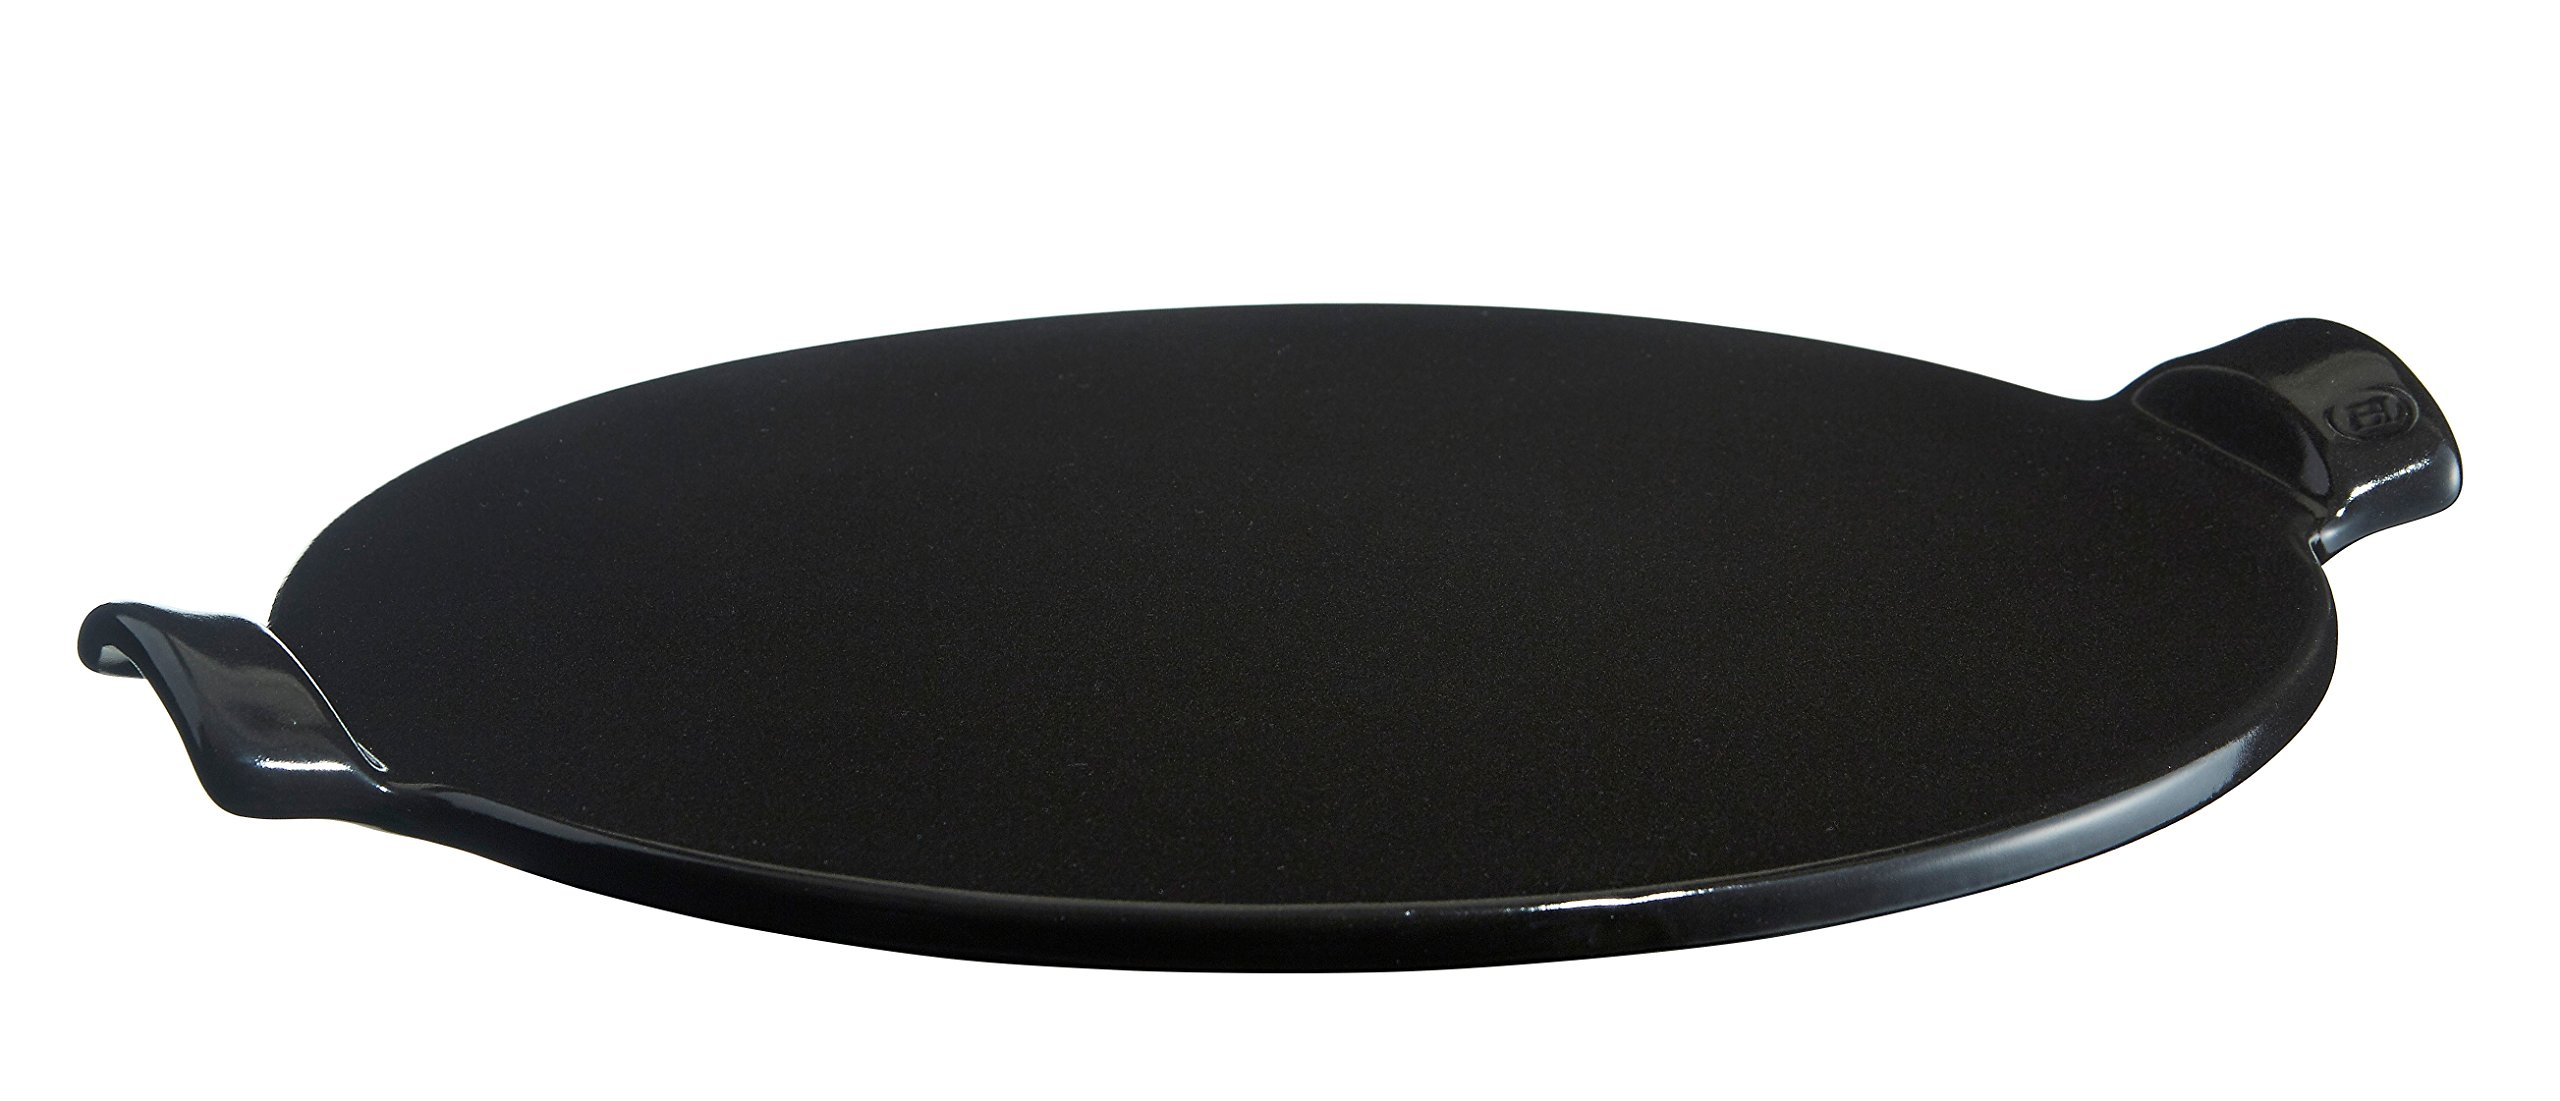 Emile Henry Made in France 14.5-Inch Flame Top Pizza Stone, Charcoal